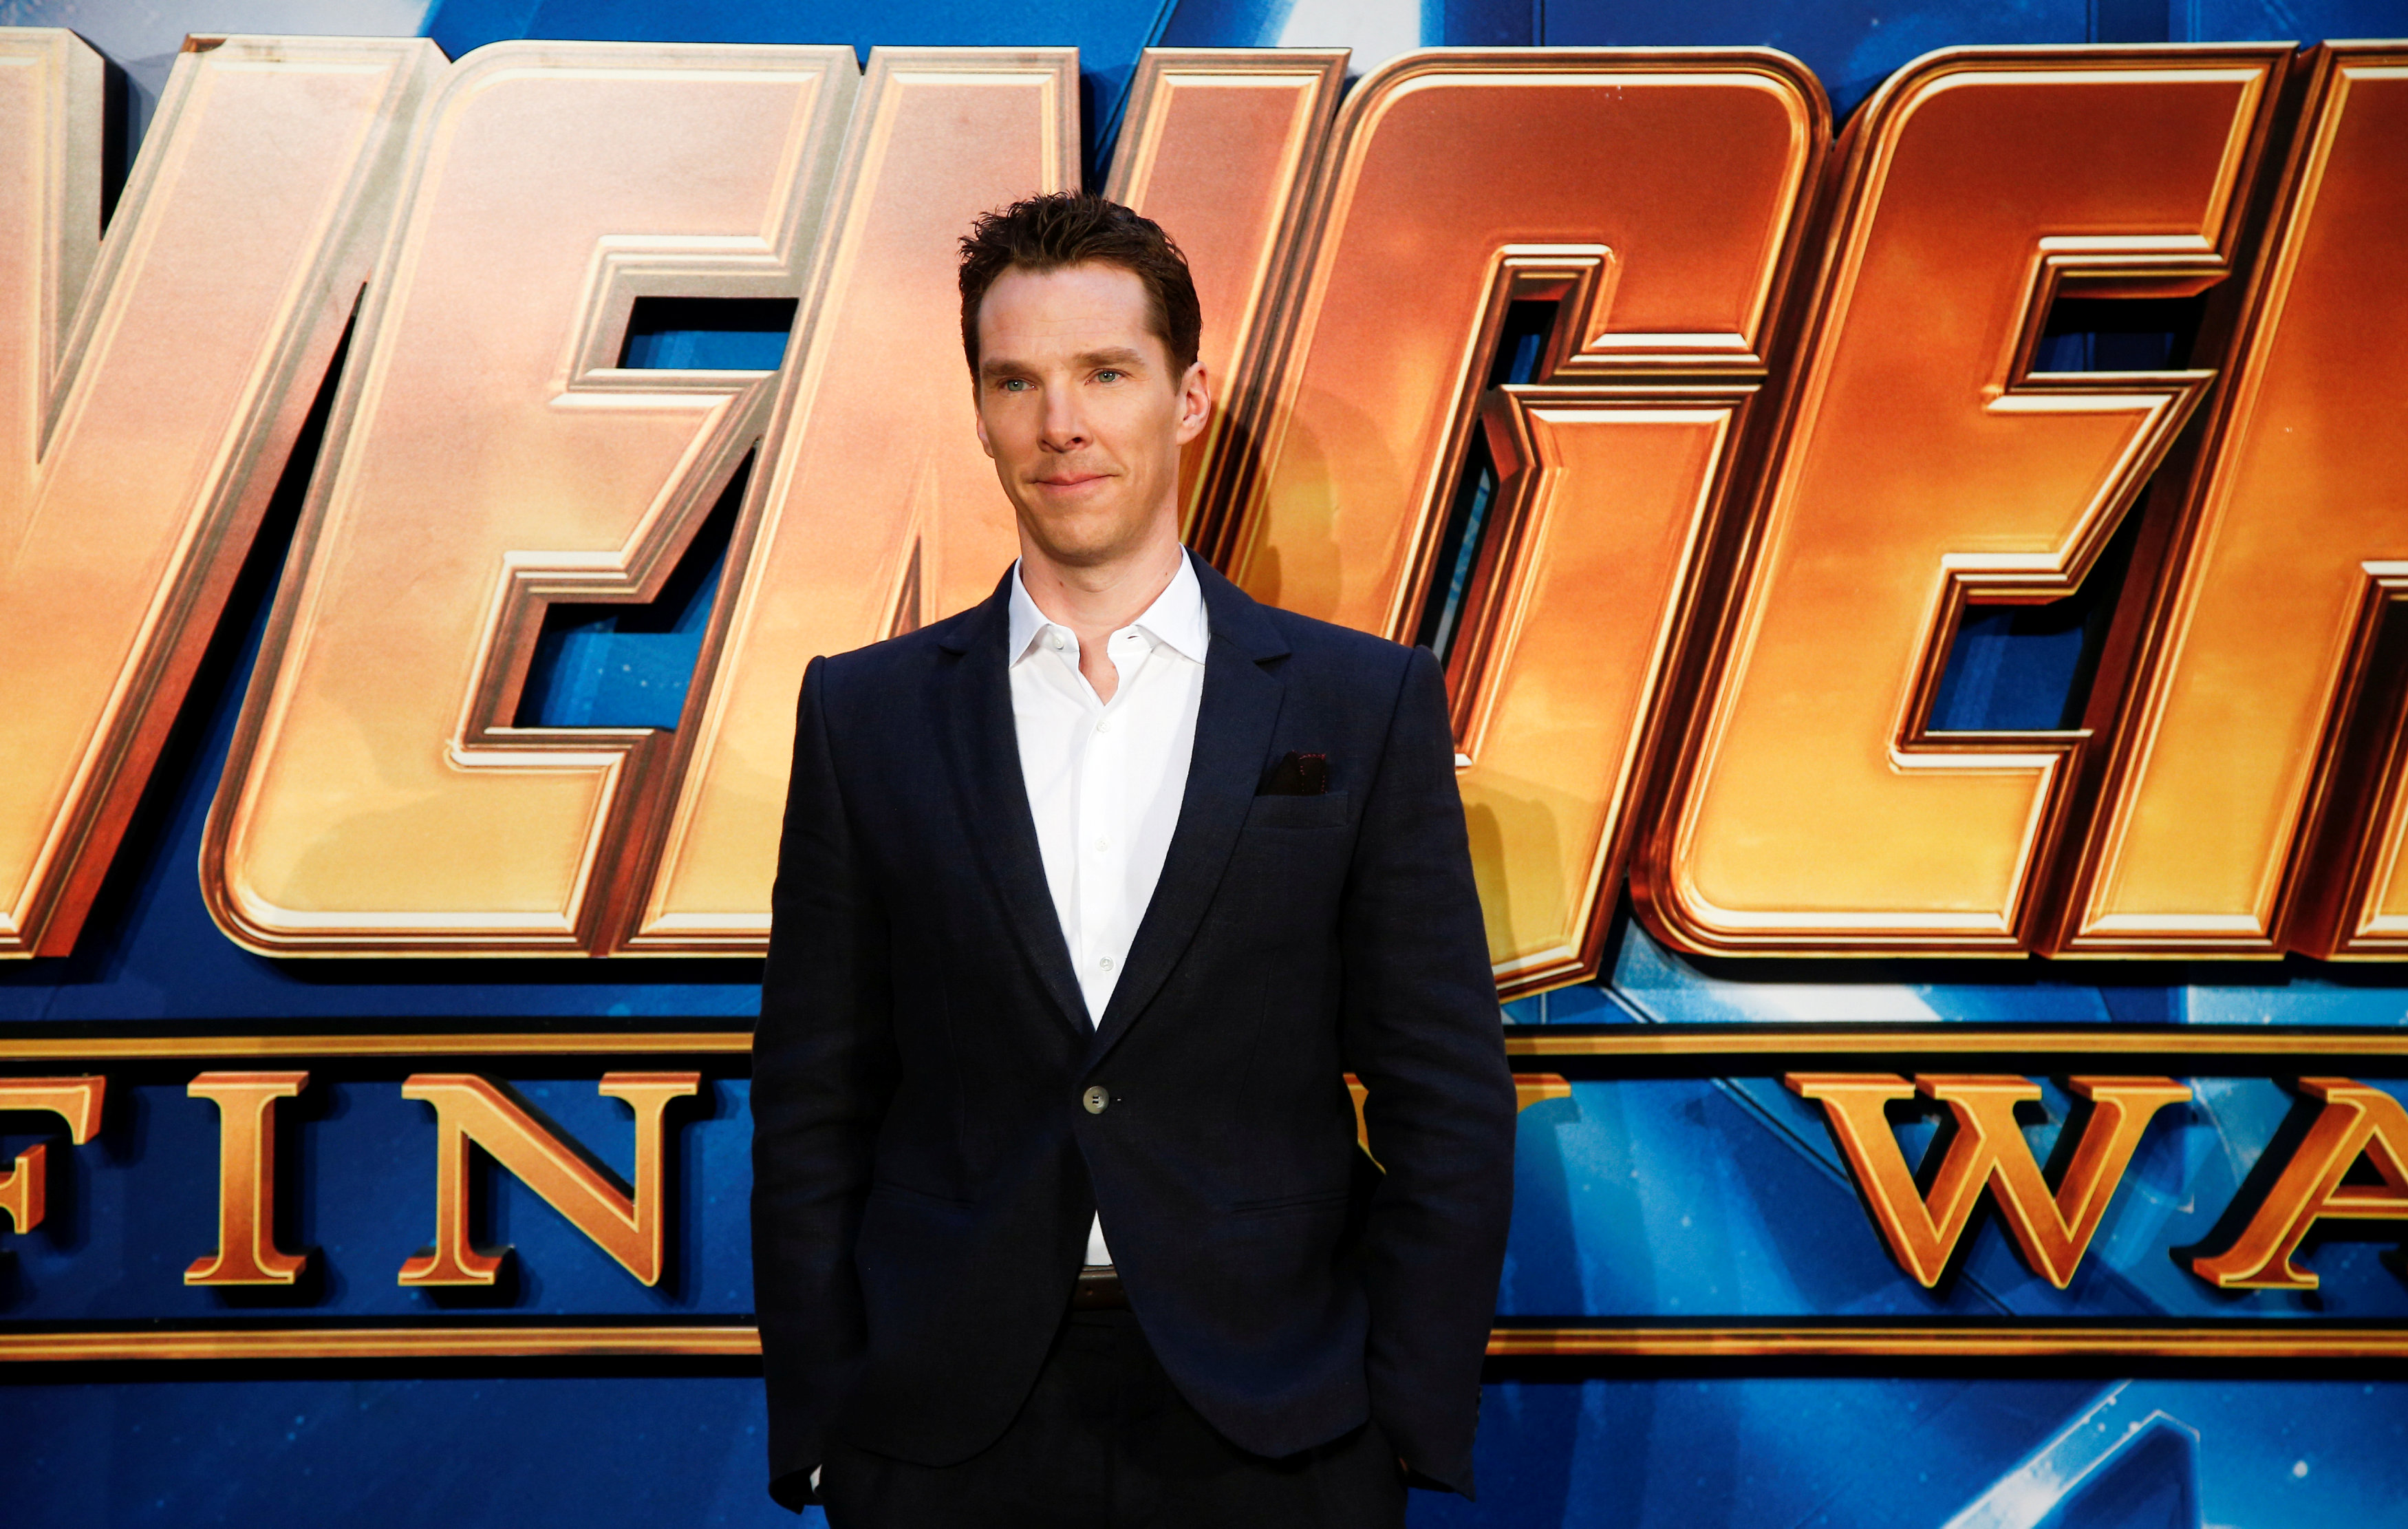 FILE PHOTO: Actor Benedict Cumberbatch attends the Avengers: Infinity War fan event in London, Britain April 8, 2018. Photo: REUTERS